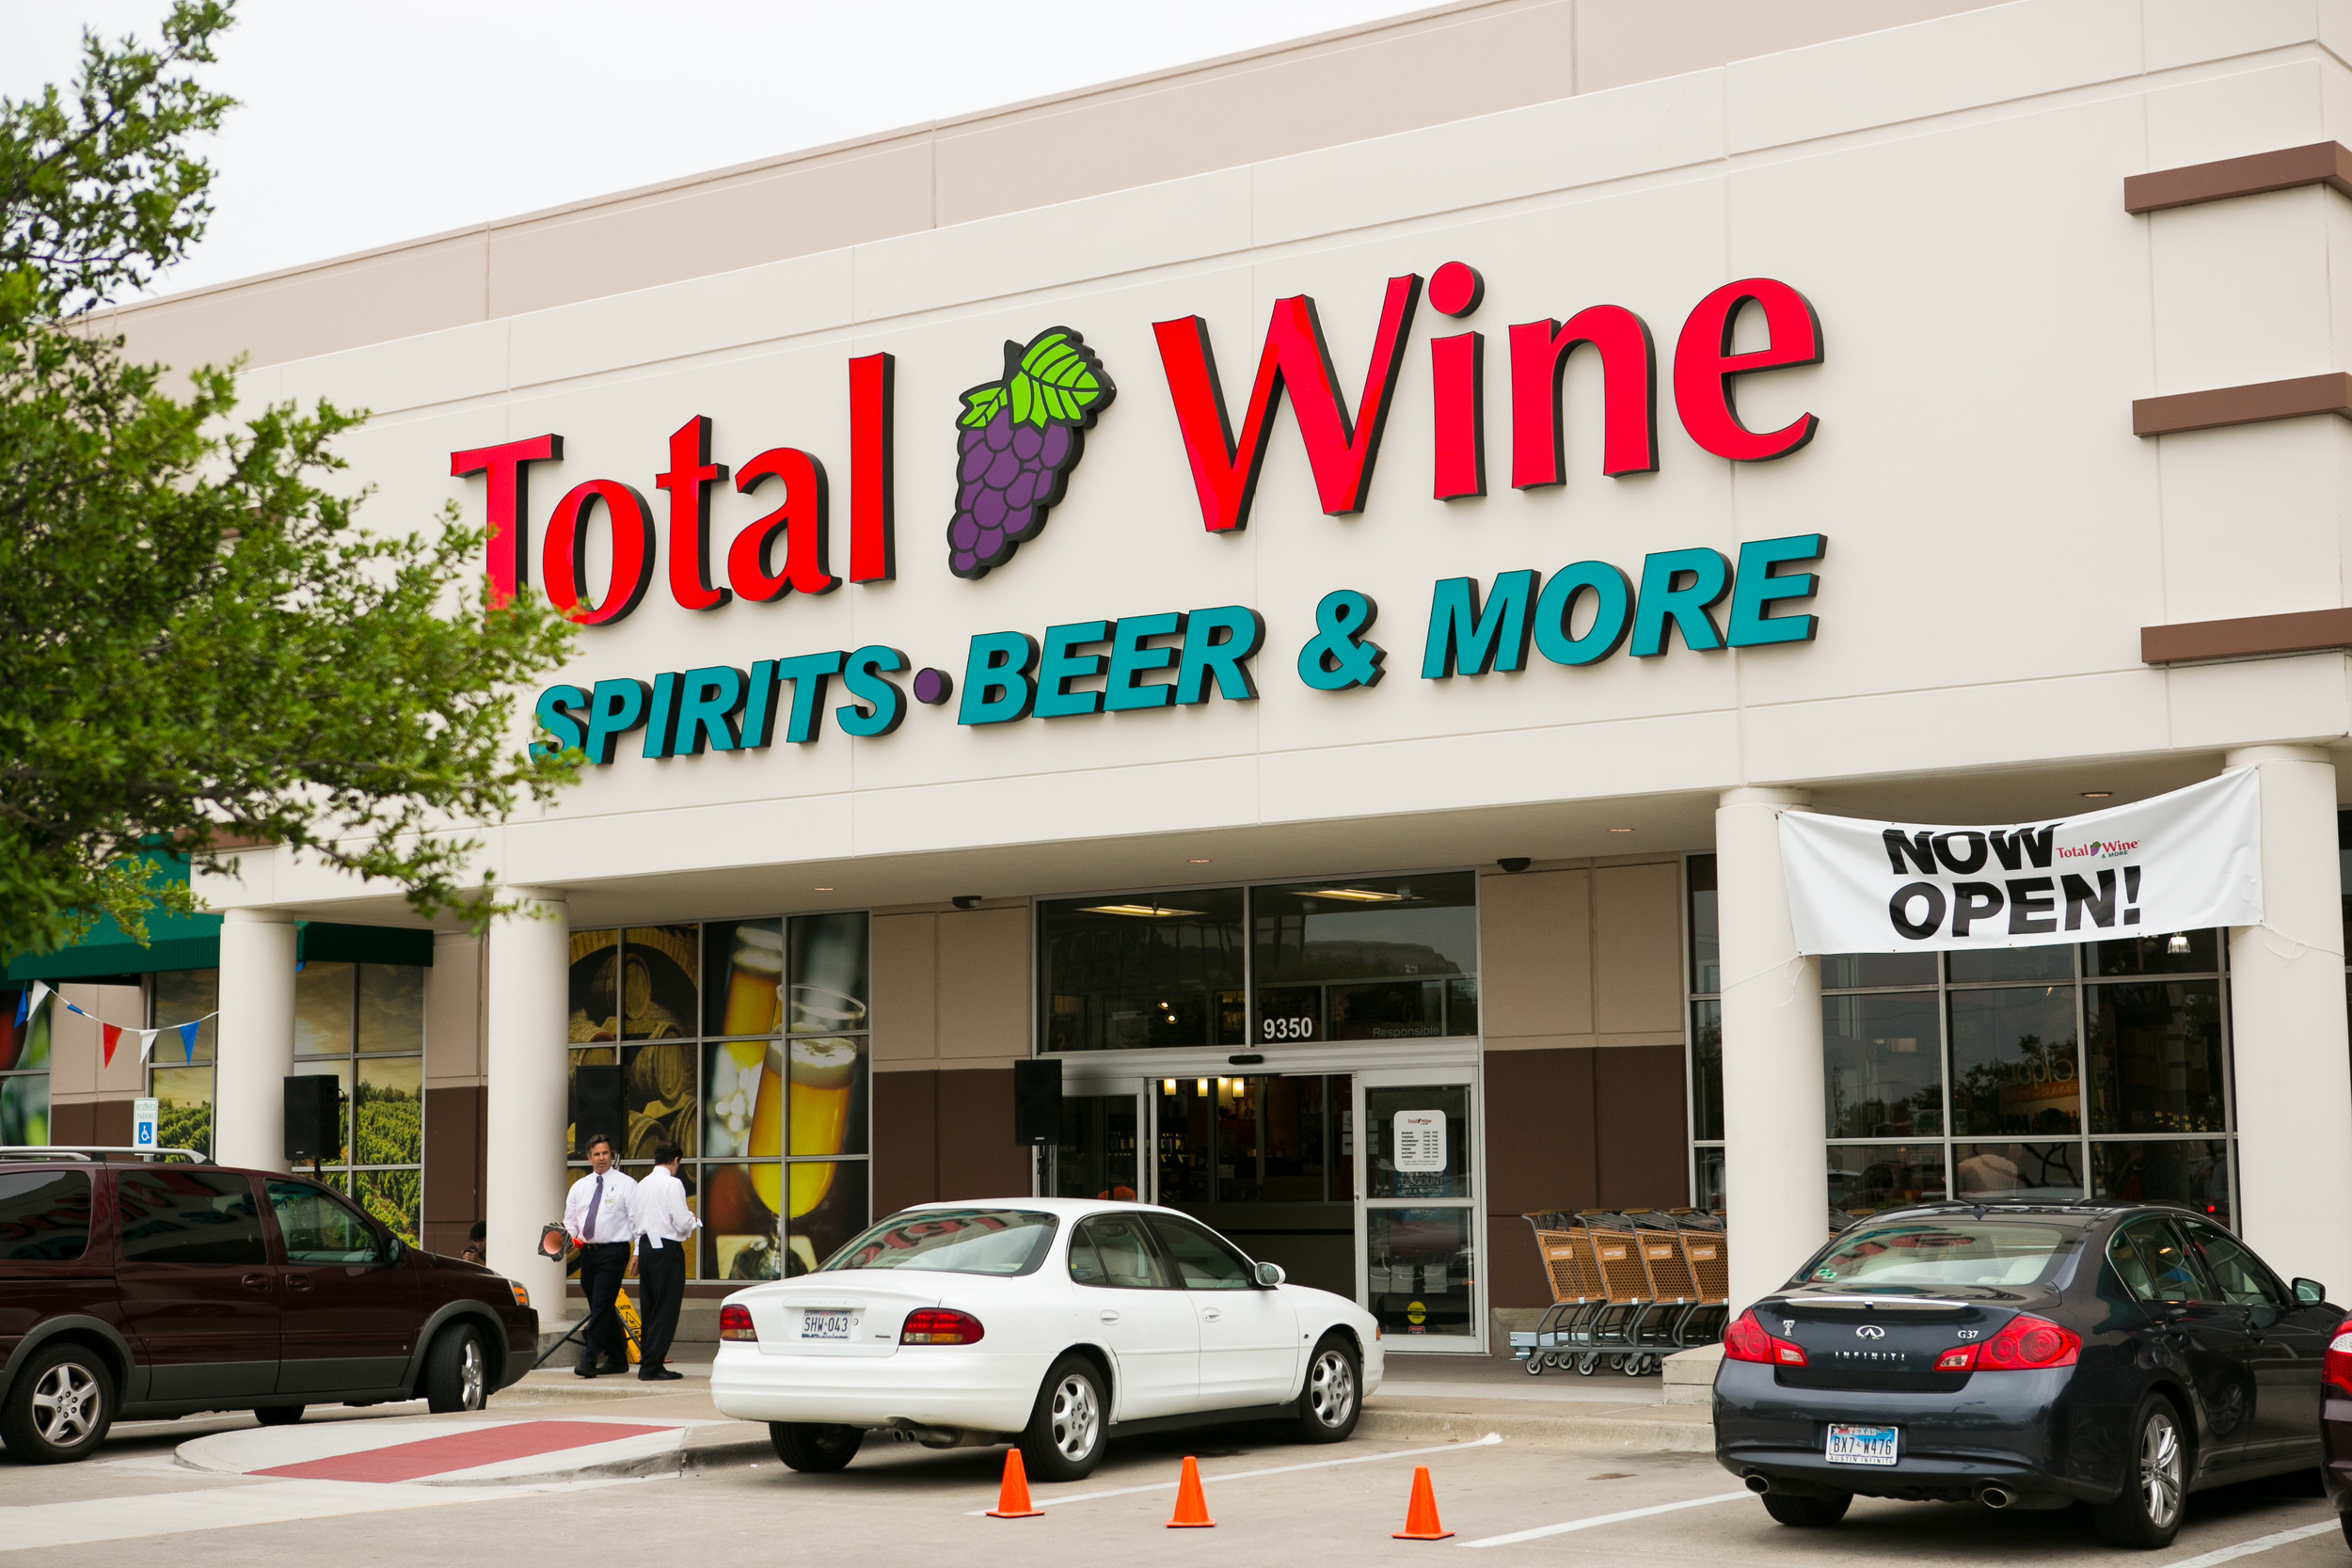 Total Wine Ribbon-0002.jpg